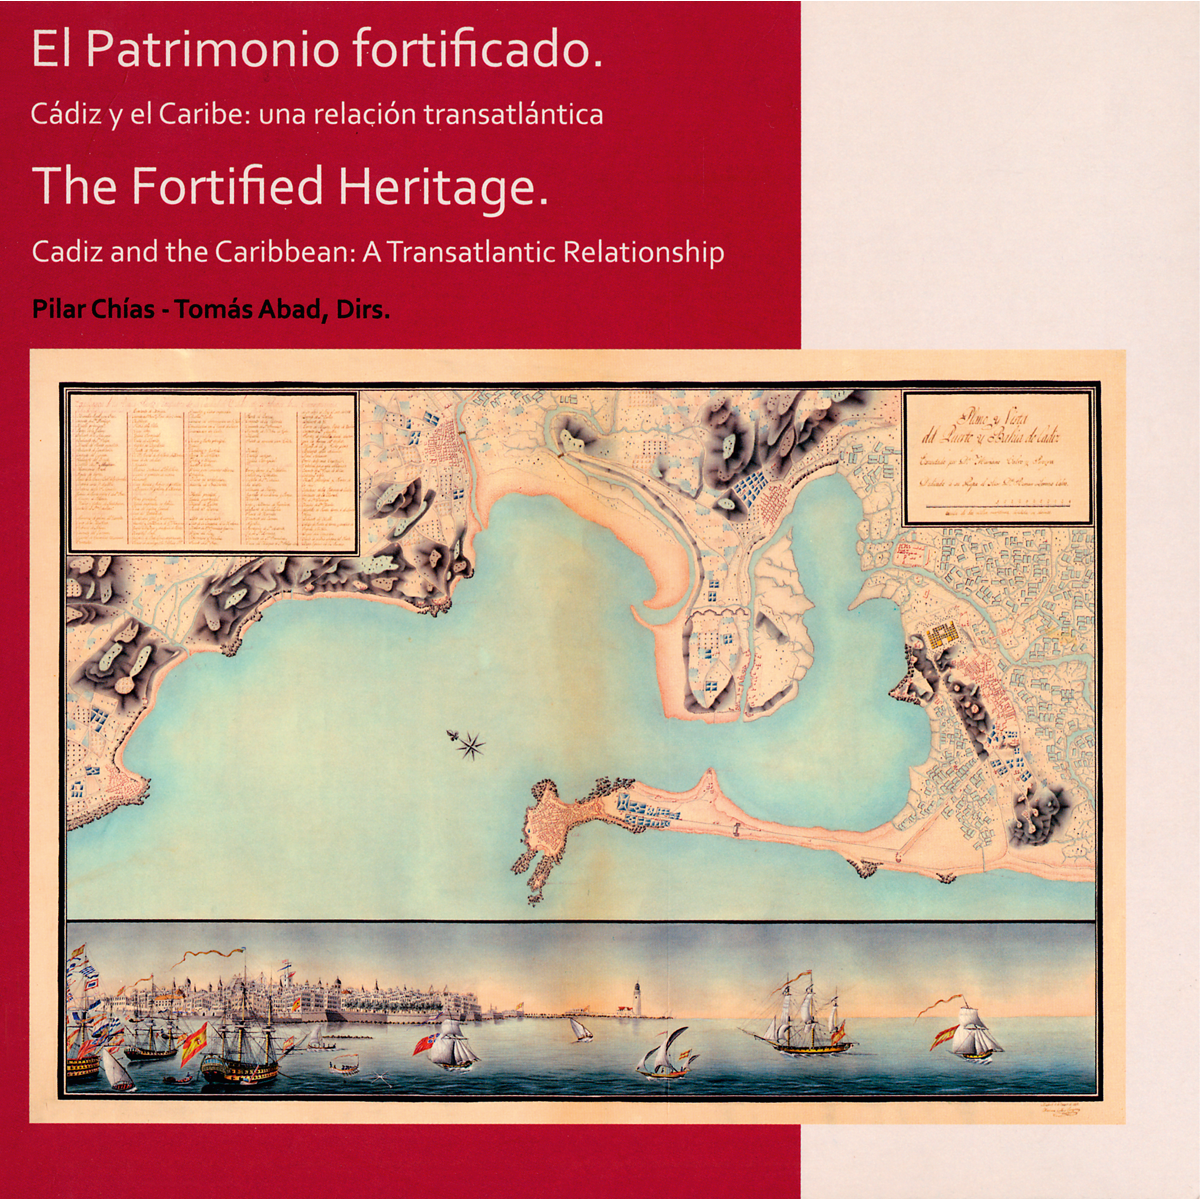 The Fortified Heritage